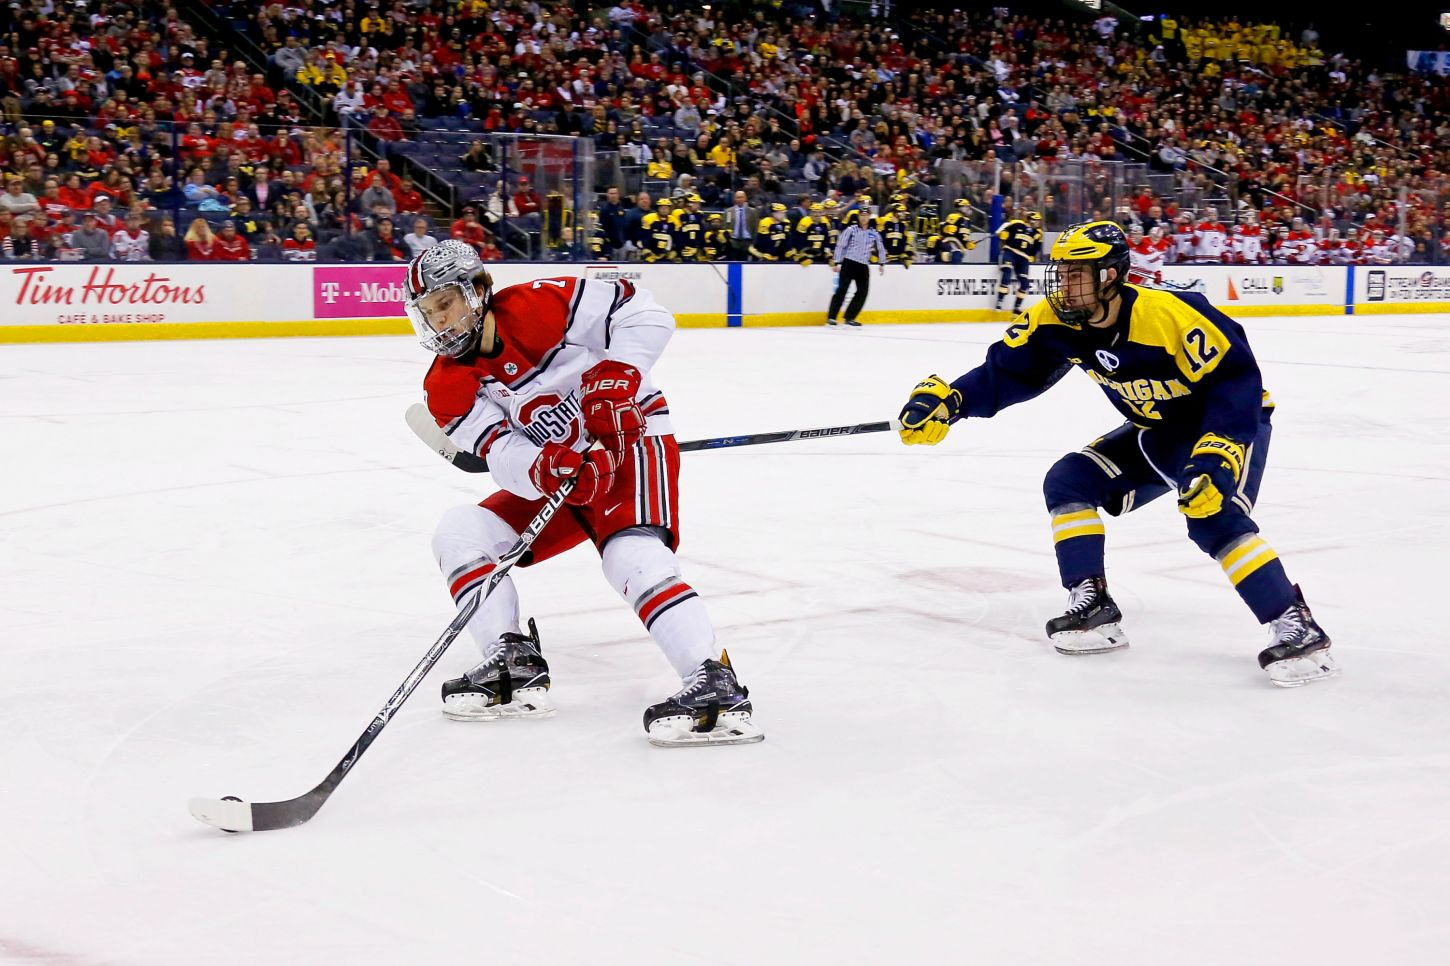 Ohio State plays Michigan in the Big 10 Hockey  Semifinals on Saturday, March 10, 2018 at Nationwide Arena in Columbus, Ohio.